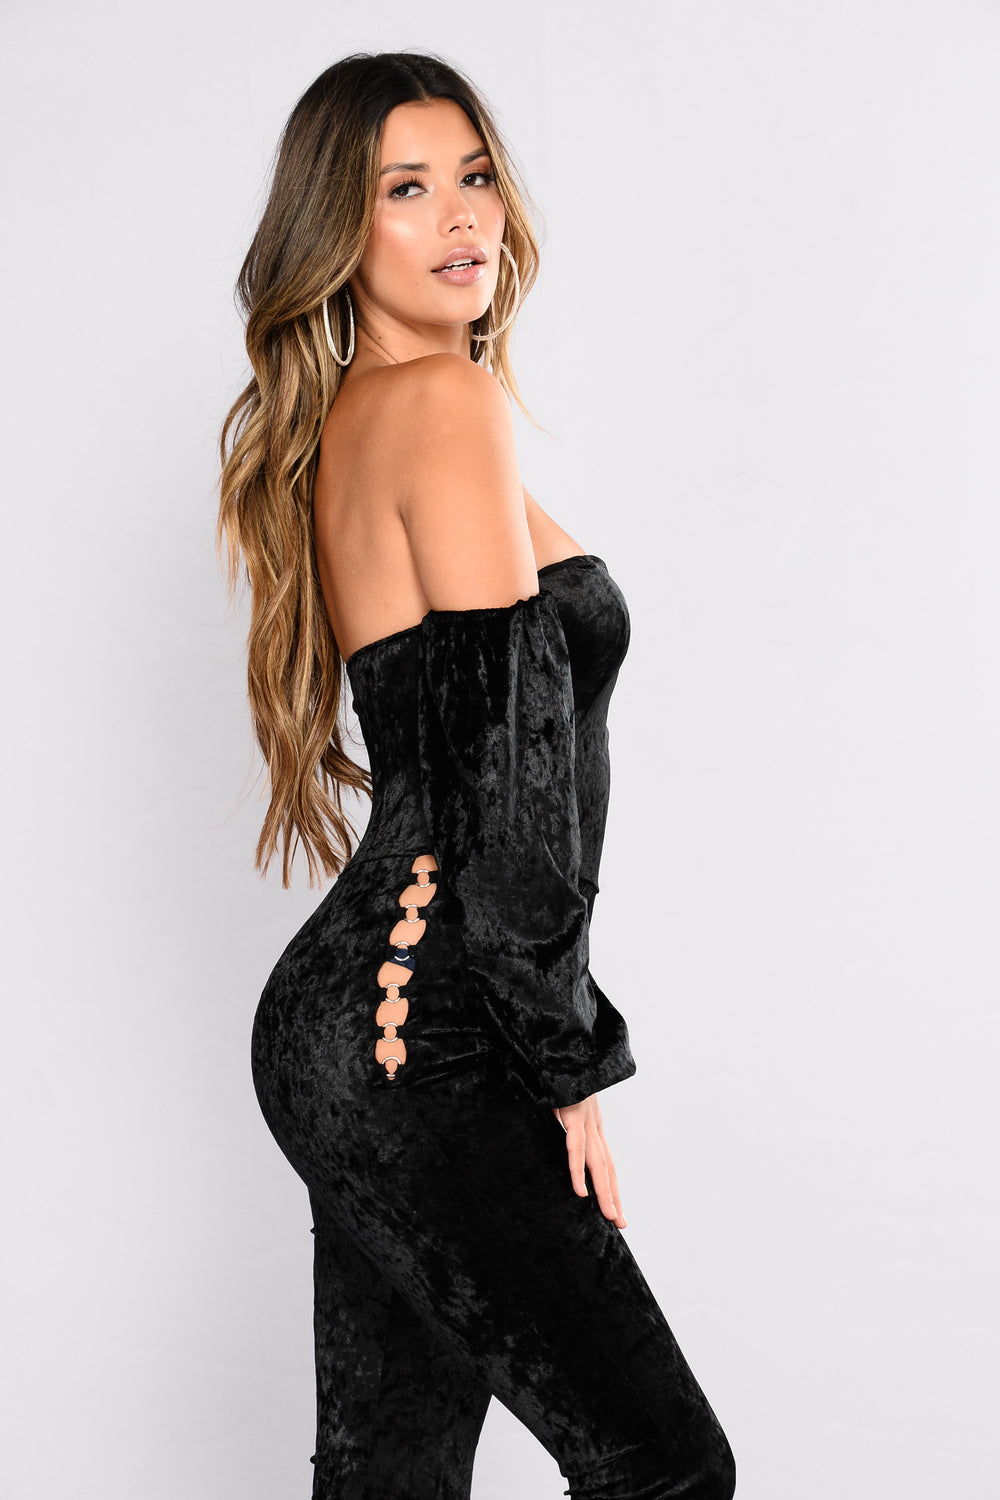 Connected At The Hip Jumpsuit - Black